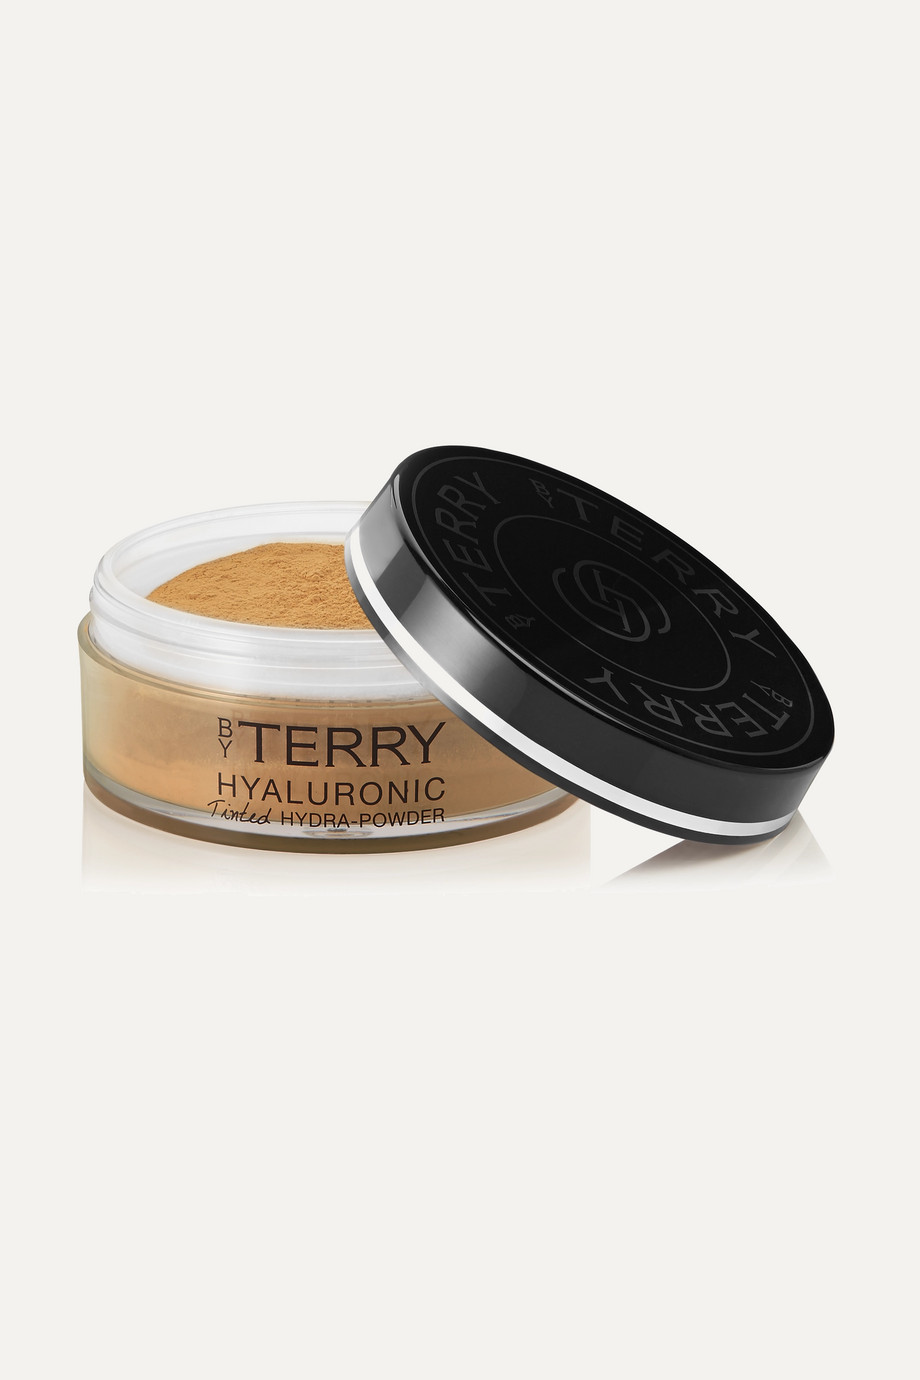 BY TERRY Hyaluronic Tinted Hydra-Powder - Medium No.400